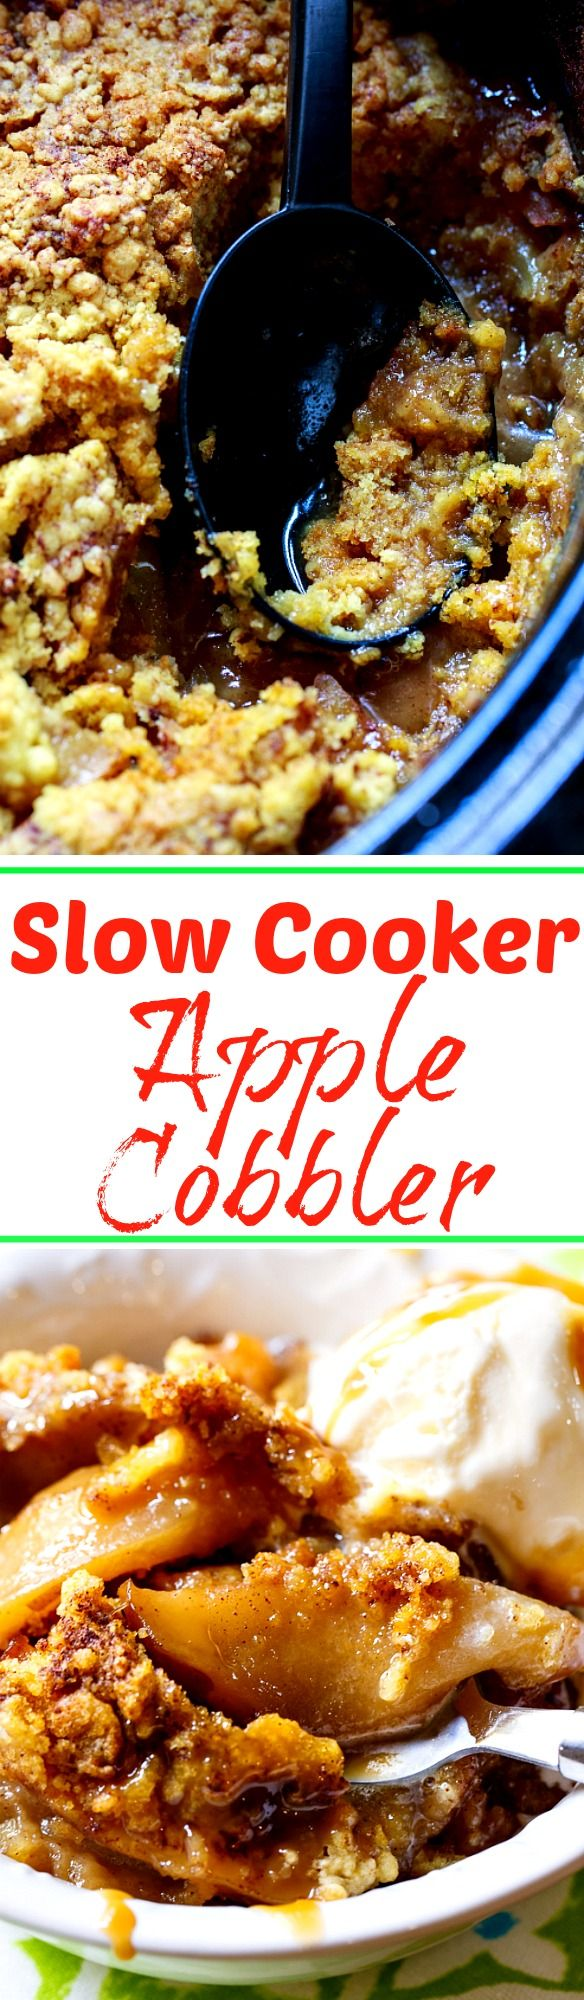 Easy crock pot cobbler recipes